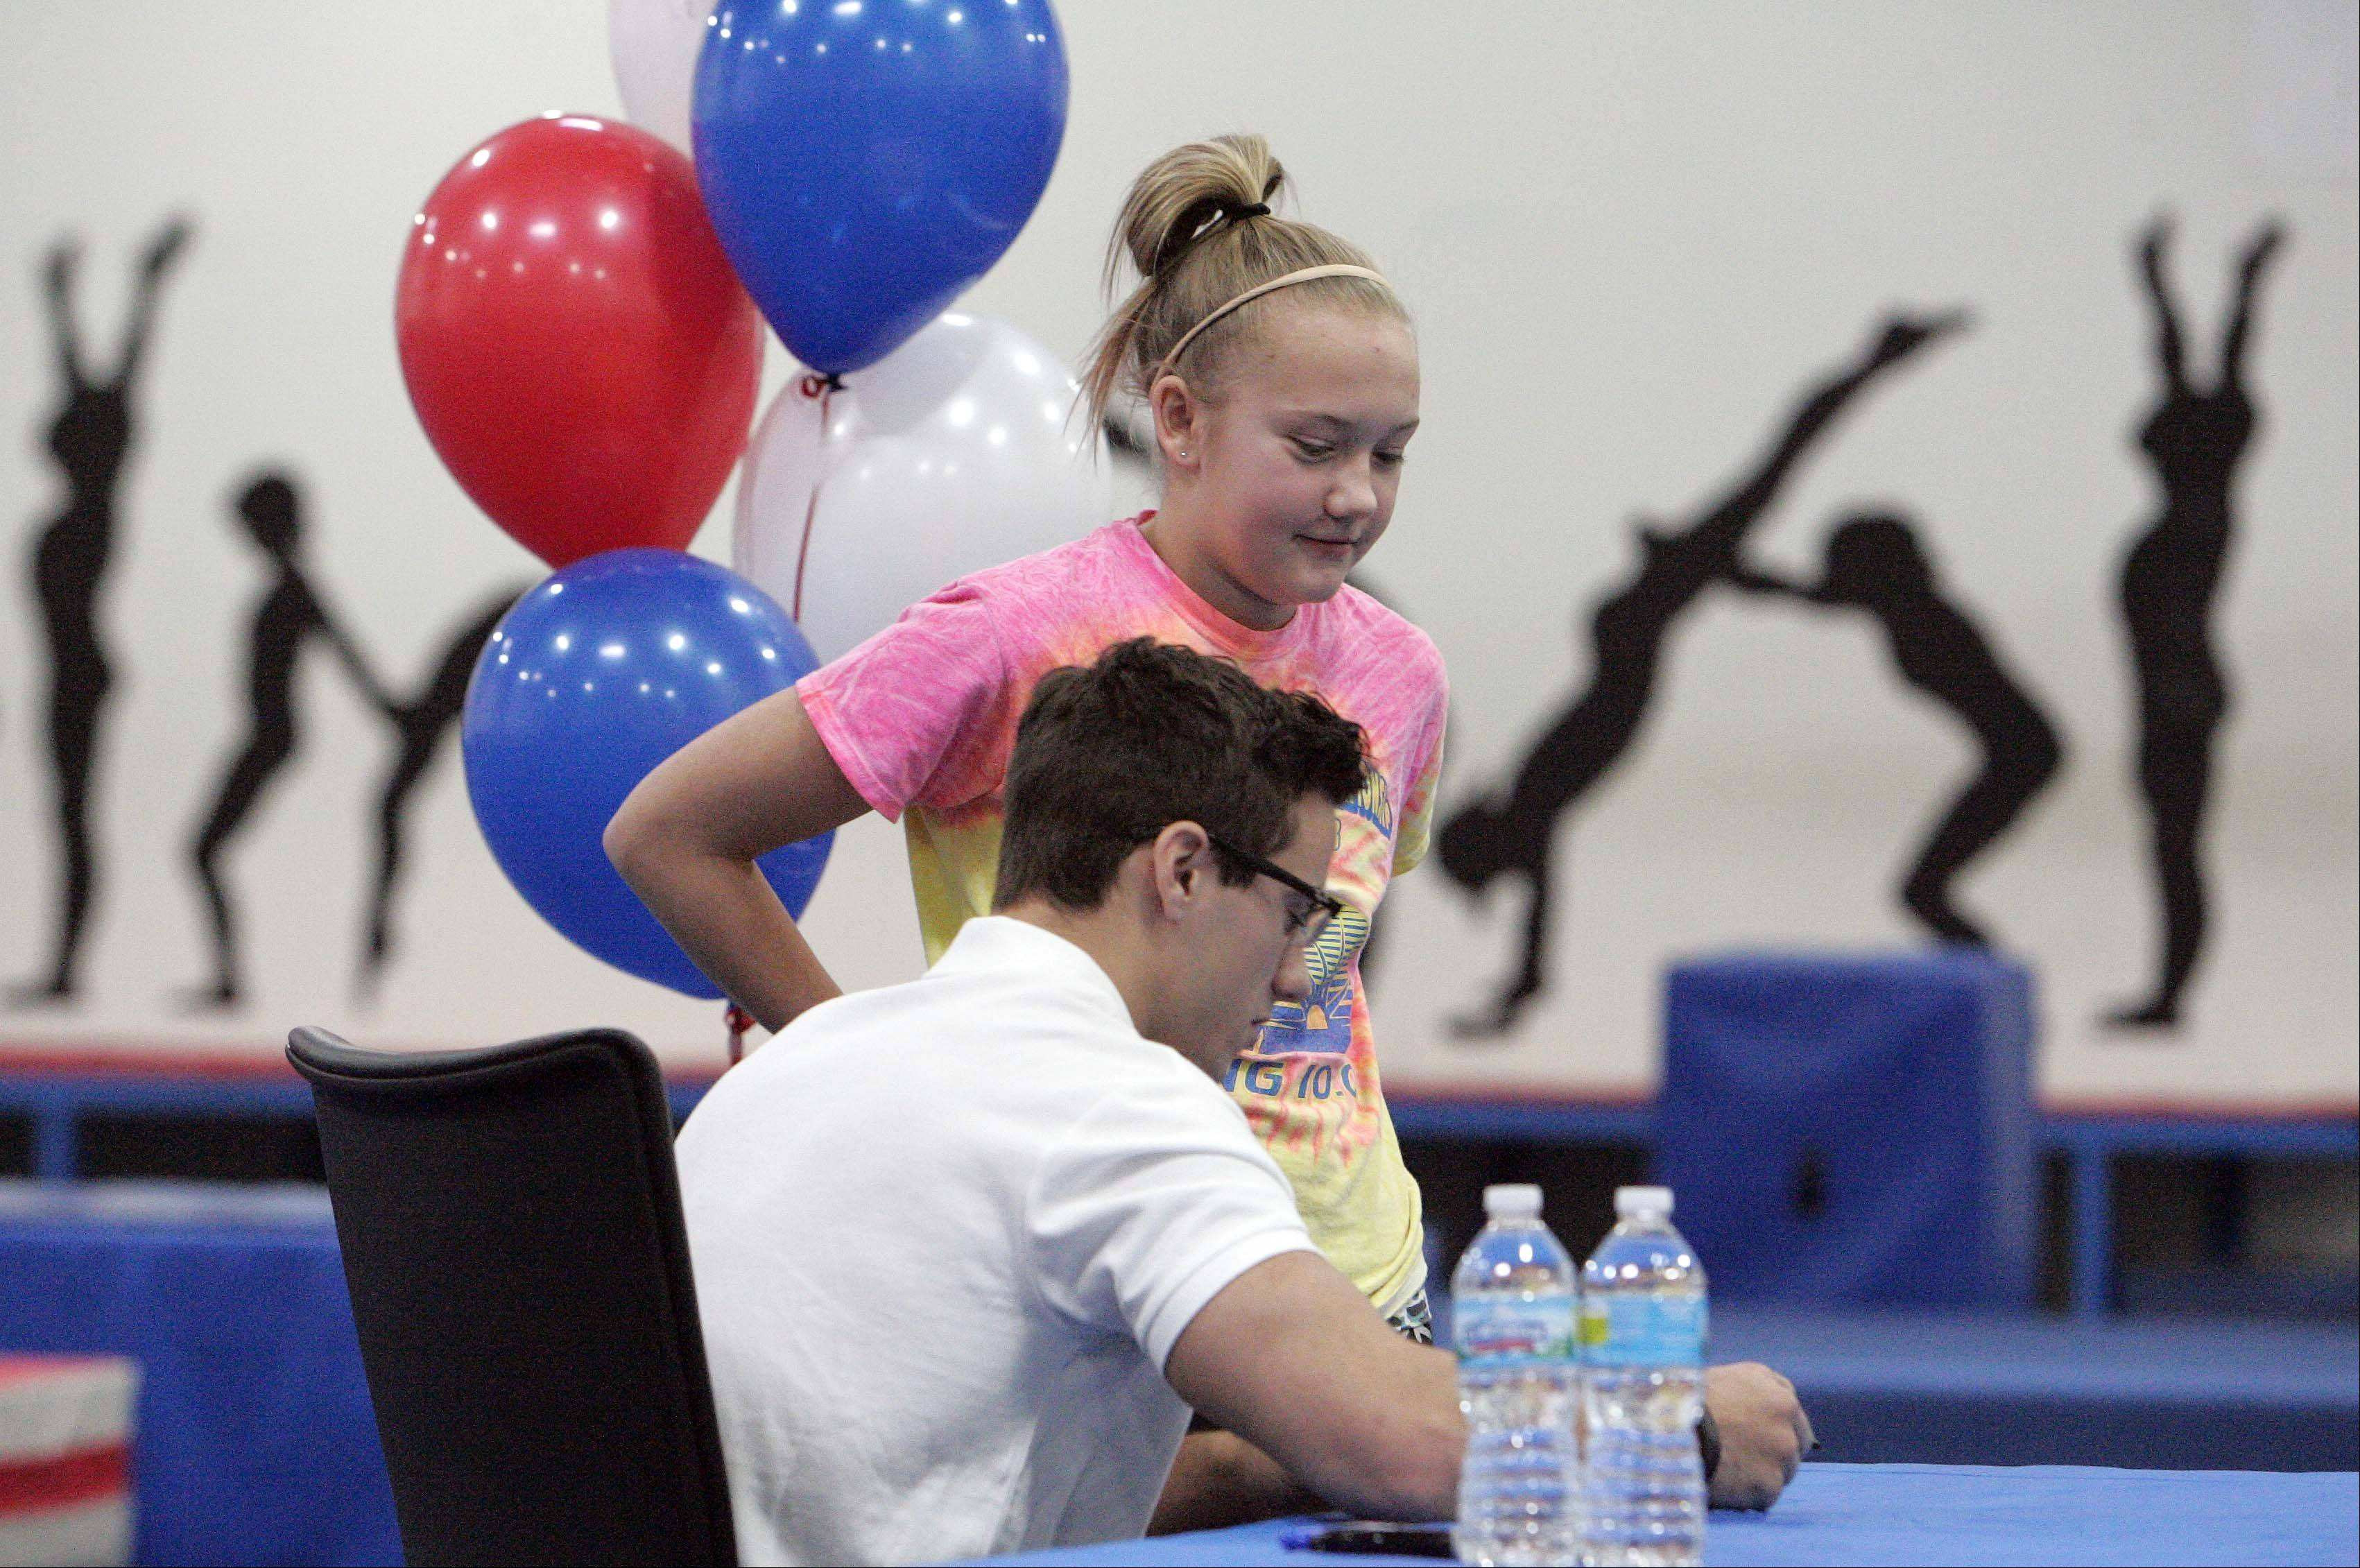 Olympic gymnast Jake Dalton signs an autograph on Saturday for 13-year-old Hailee Michel of Sleepy Hollow at Spring Hill Gymnastics in Elgin.